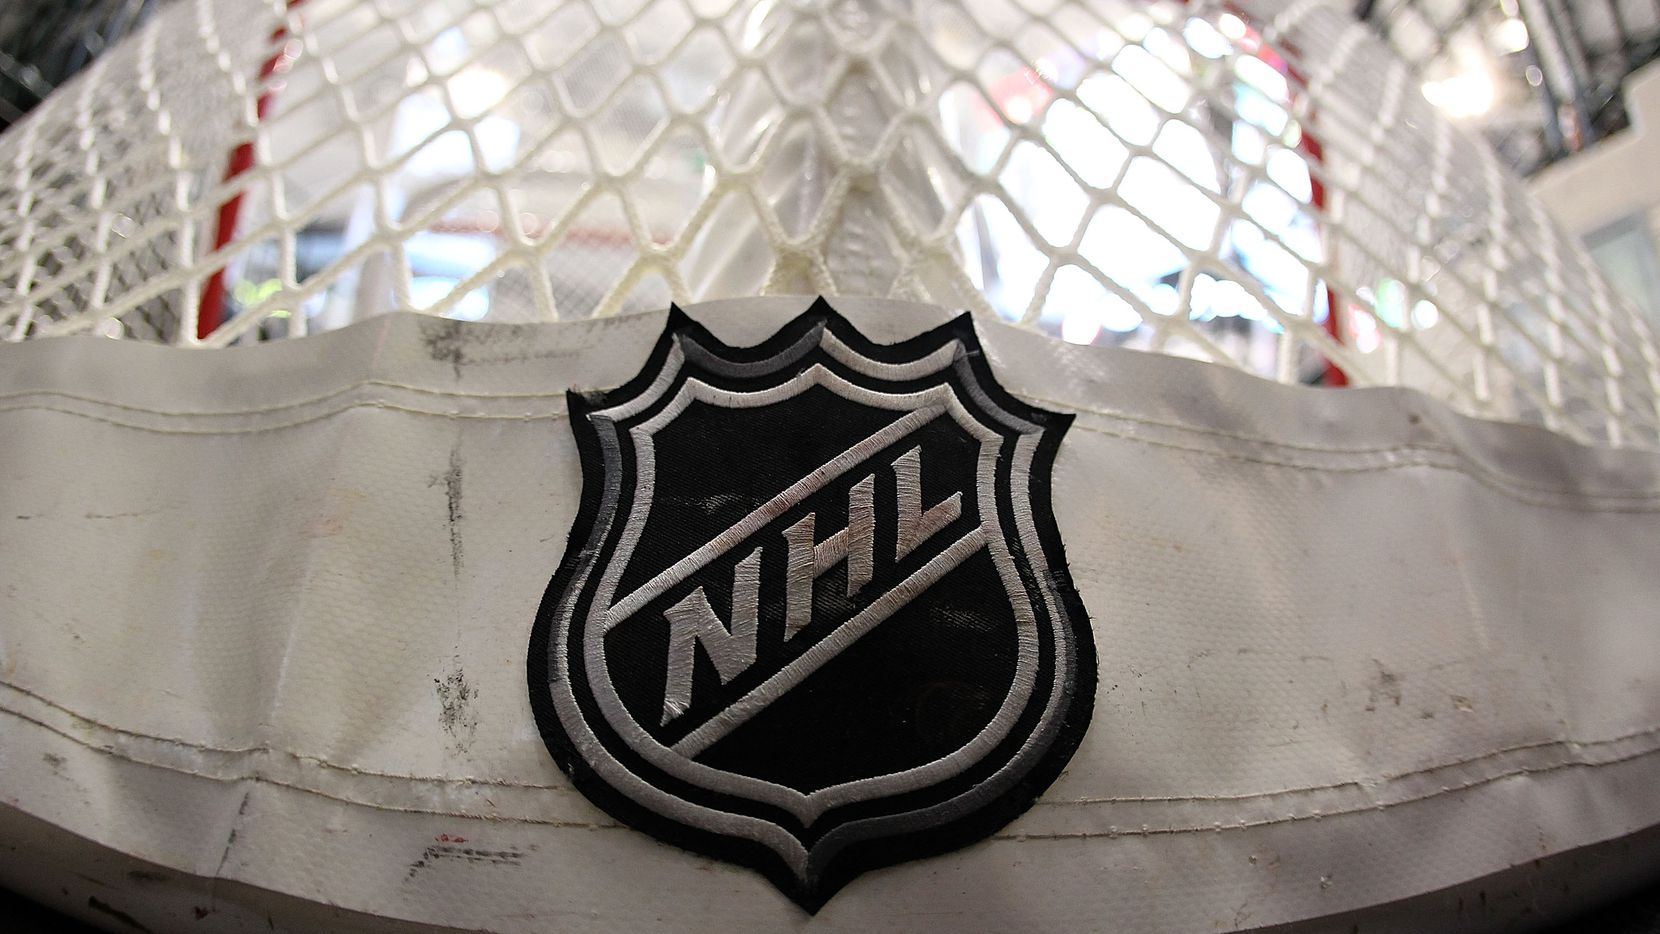 DALLAS - APRIL 08:  An NHL logo on a goal at American Airlines Center on April 8, 2010 in Dallas, Texas.  (Photo by Ronald Martinez/Getty Images)